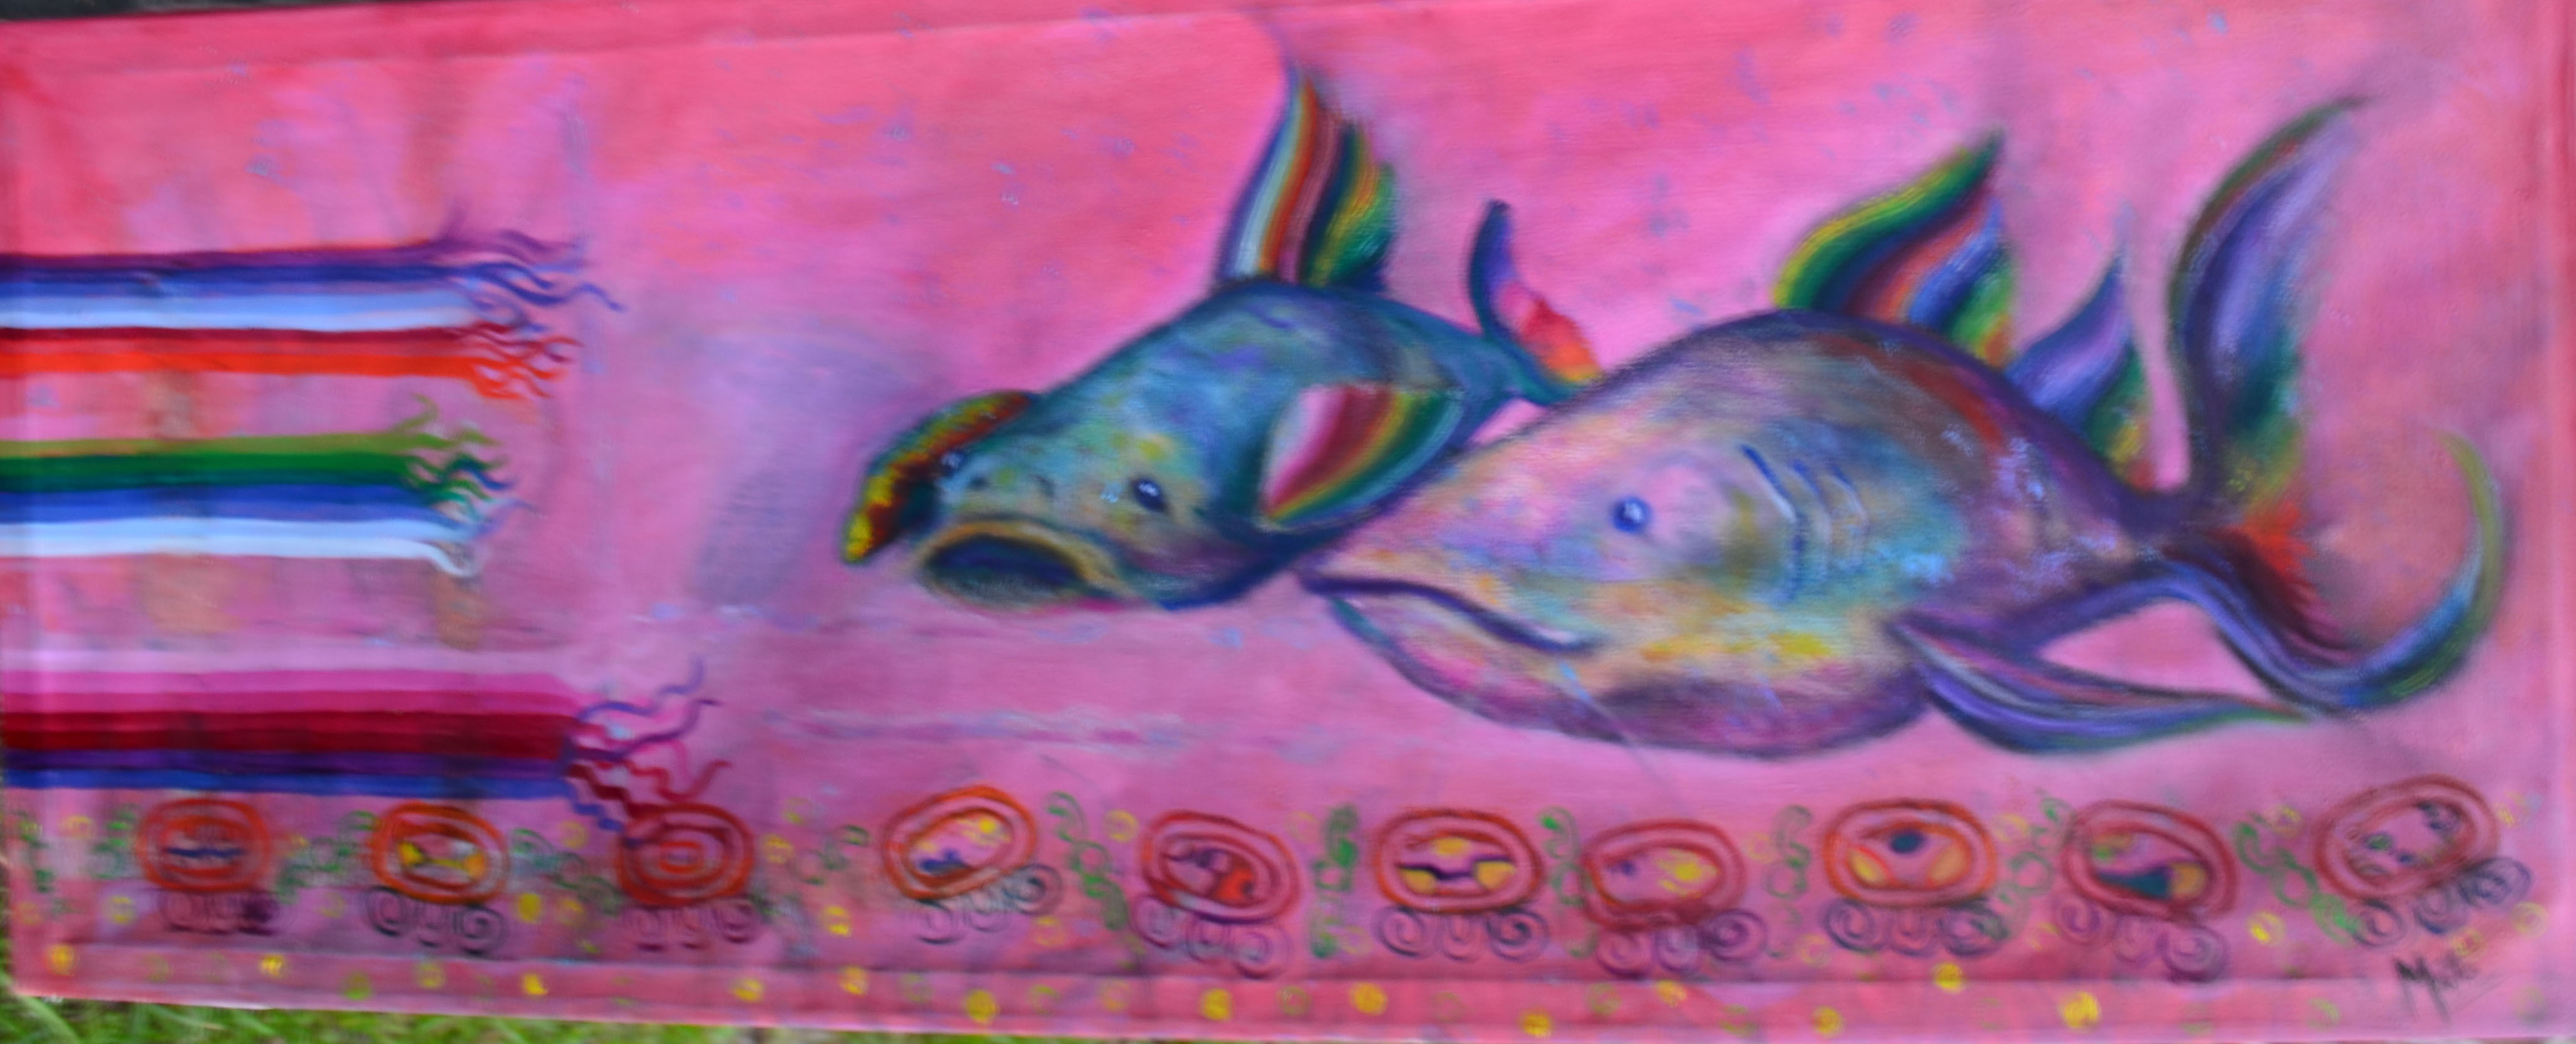 """""""Peces nortinos I"""" (2020) - Jeannette Matte"""